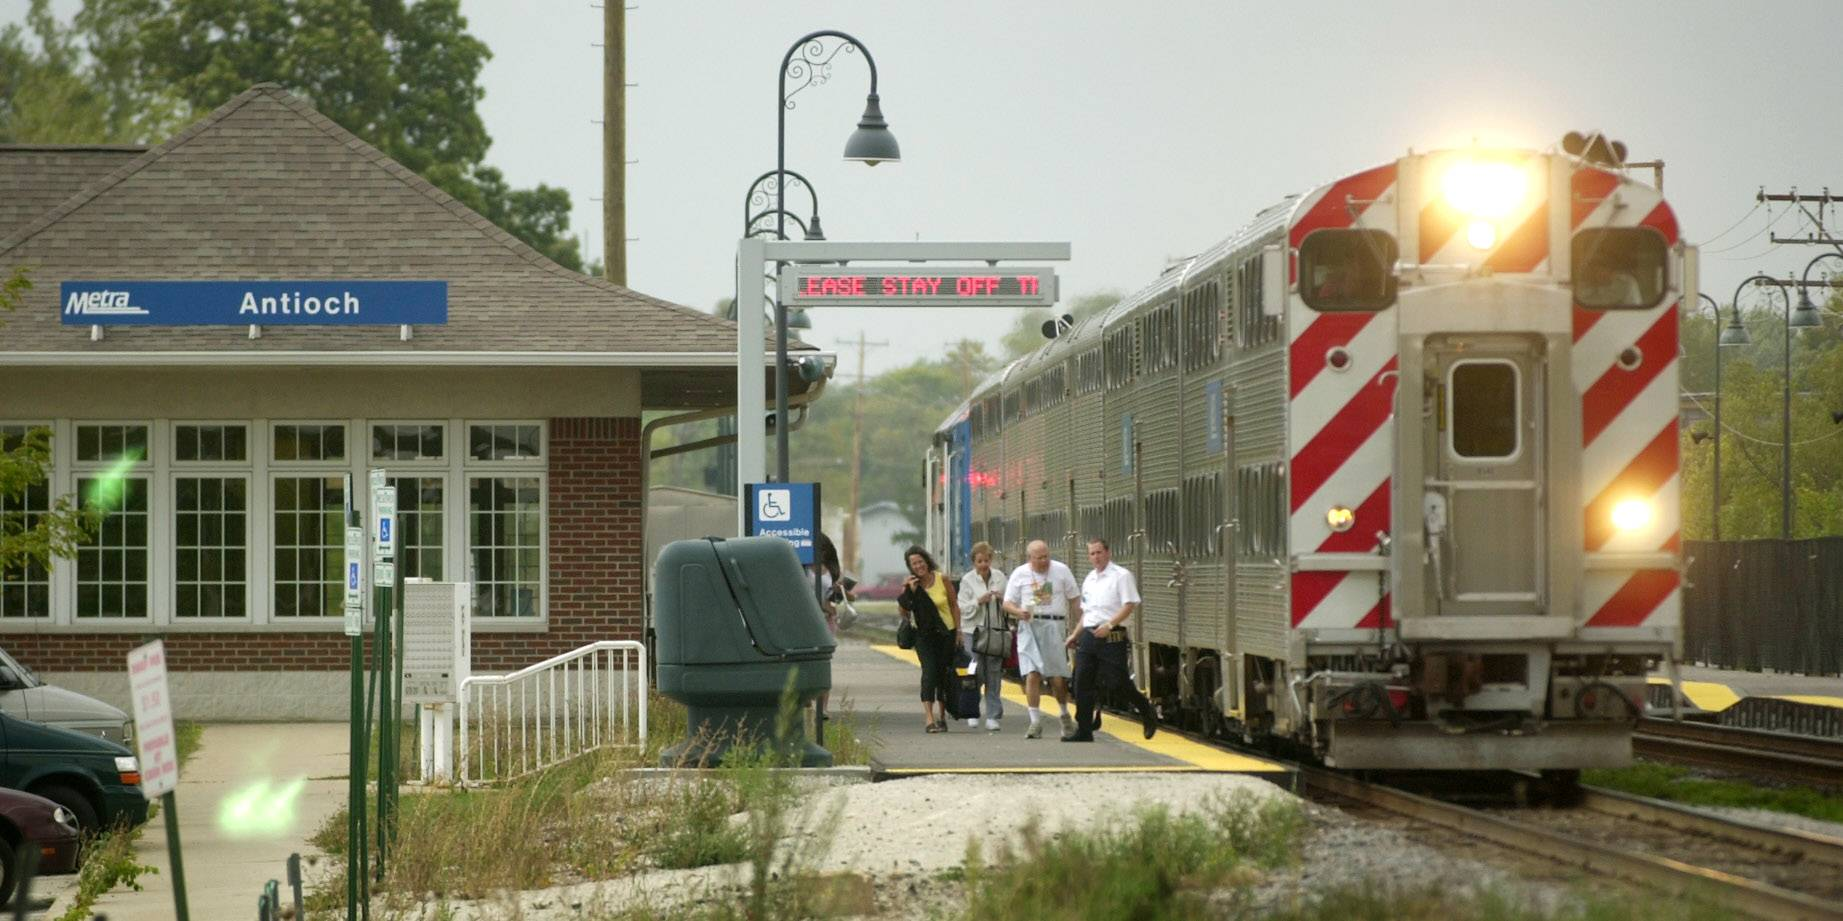 Some riders getting a break in Metra's new fare structure